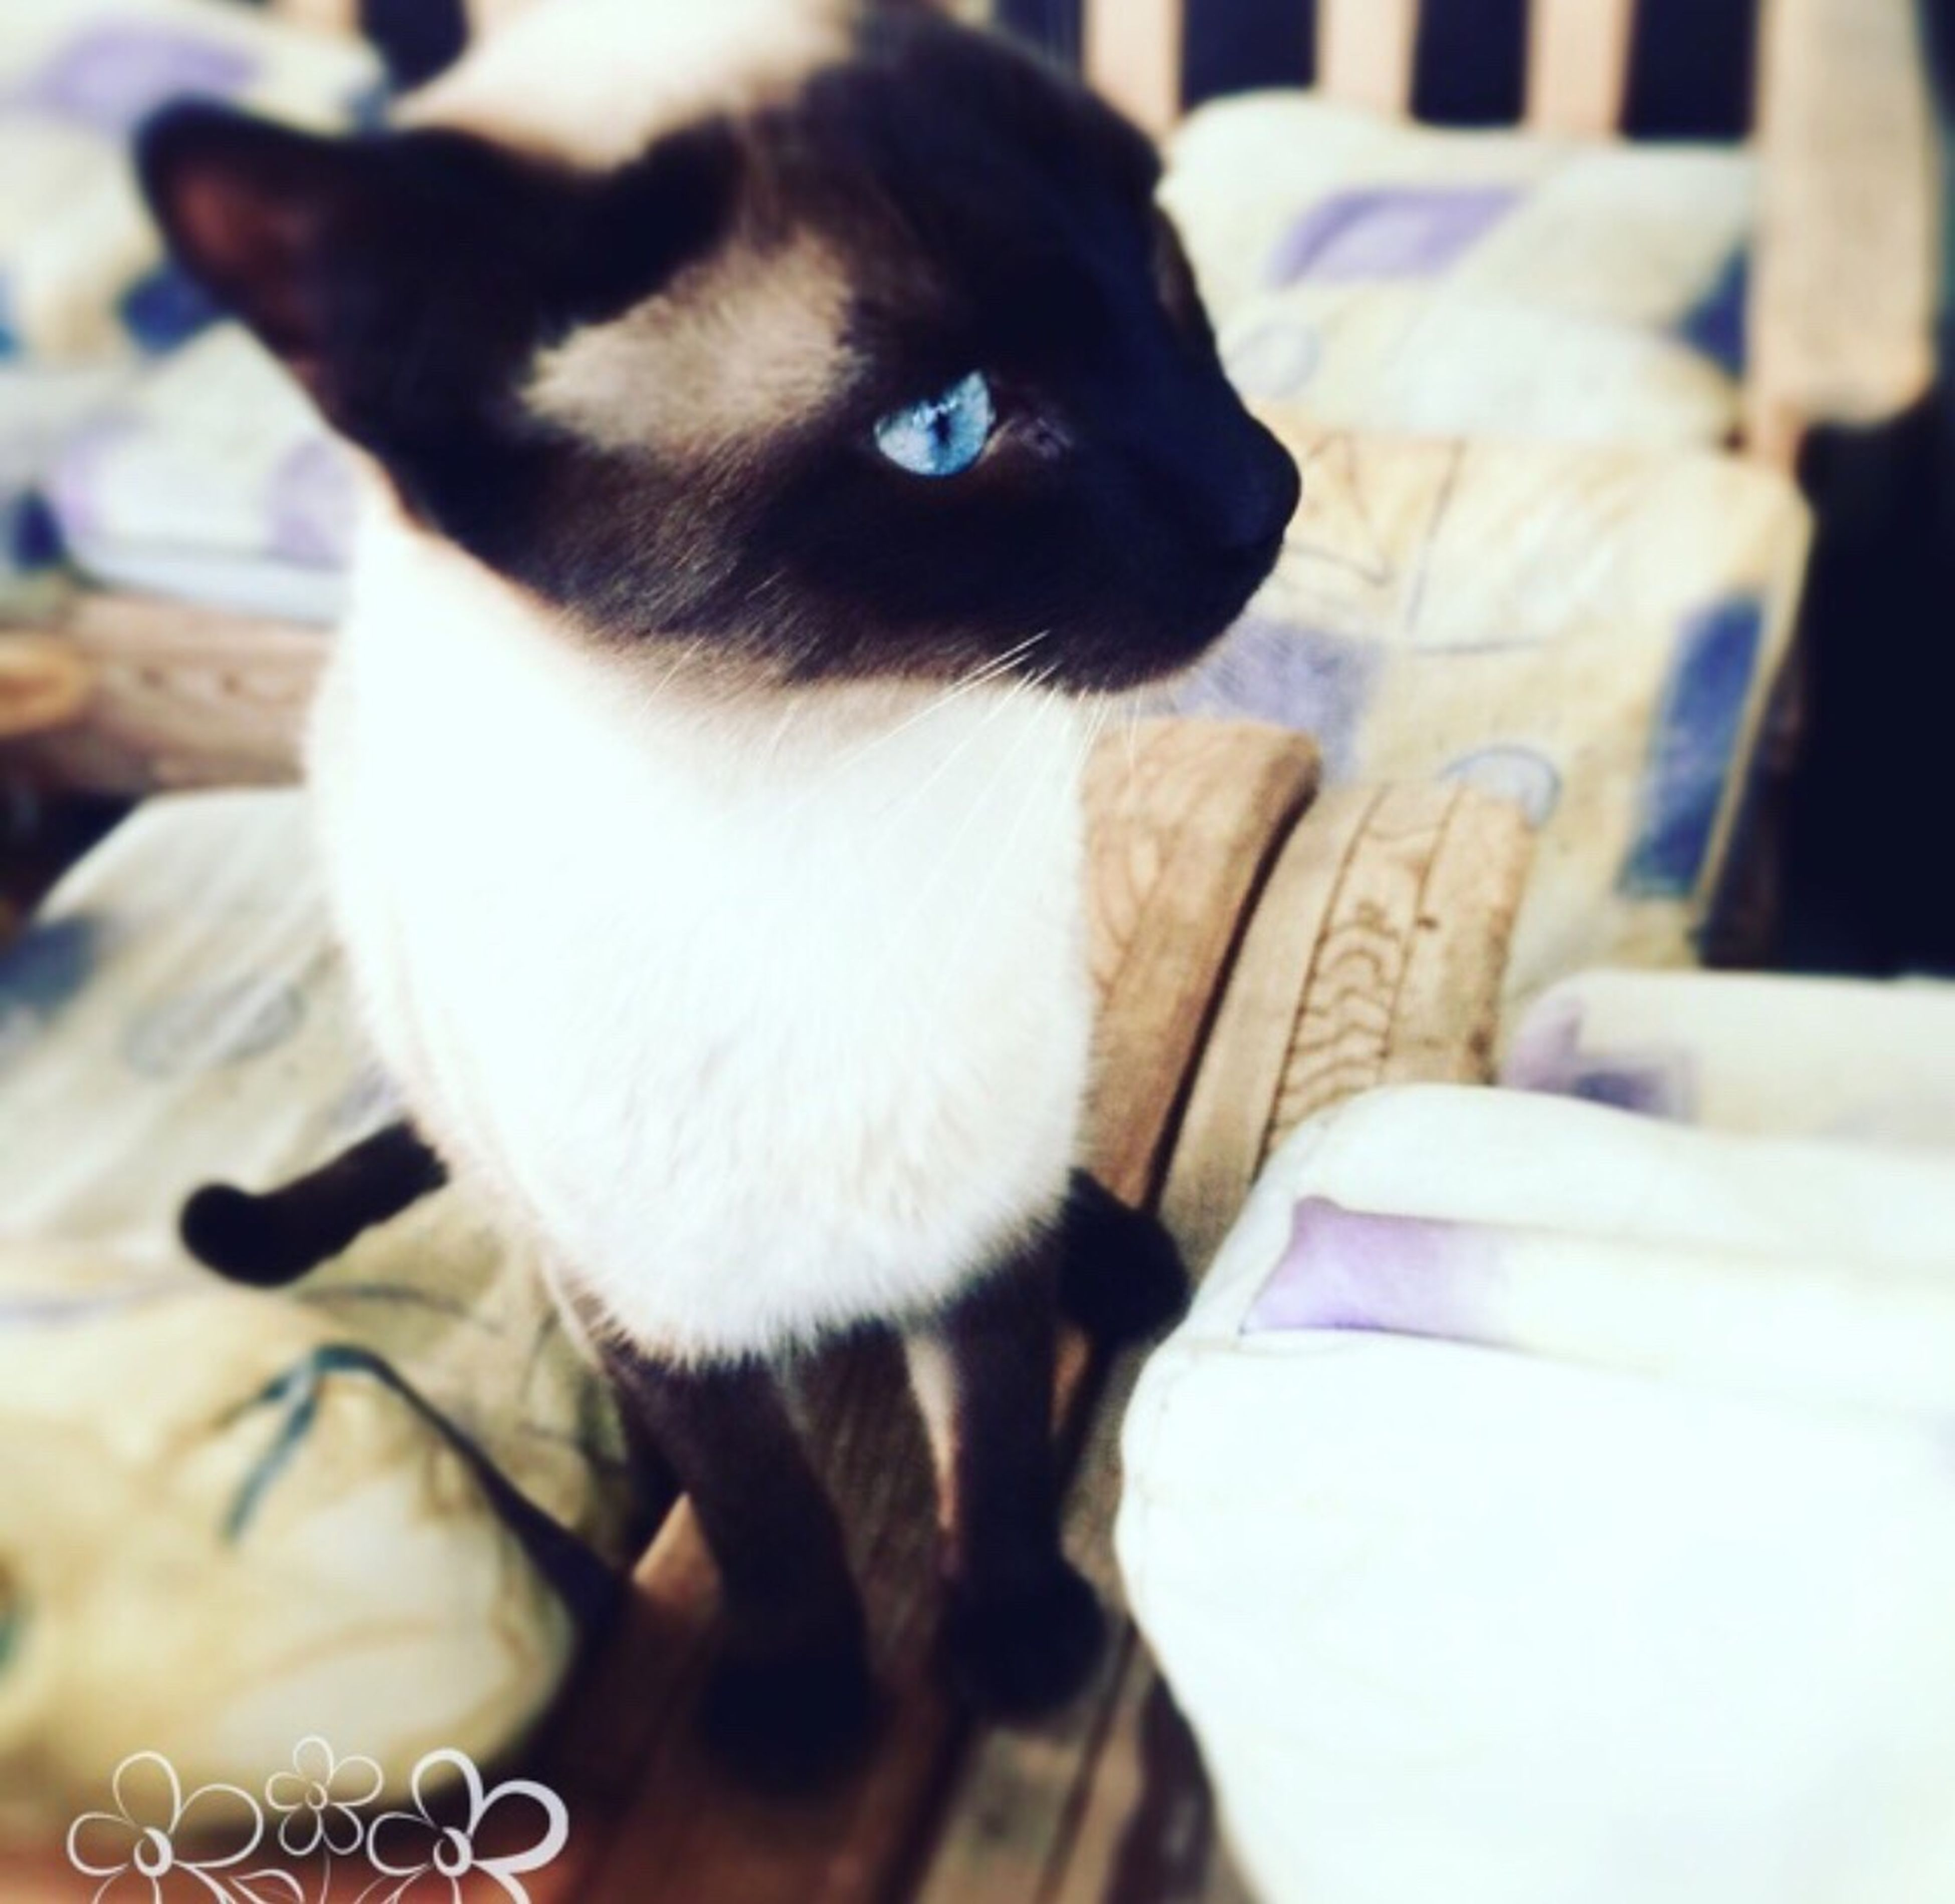 domestic animals, pets, one animal, mammal, animal themes, close-up, indoors, domestic cat, no people, day